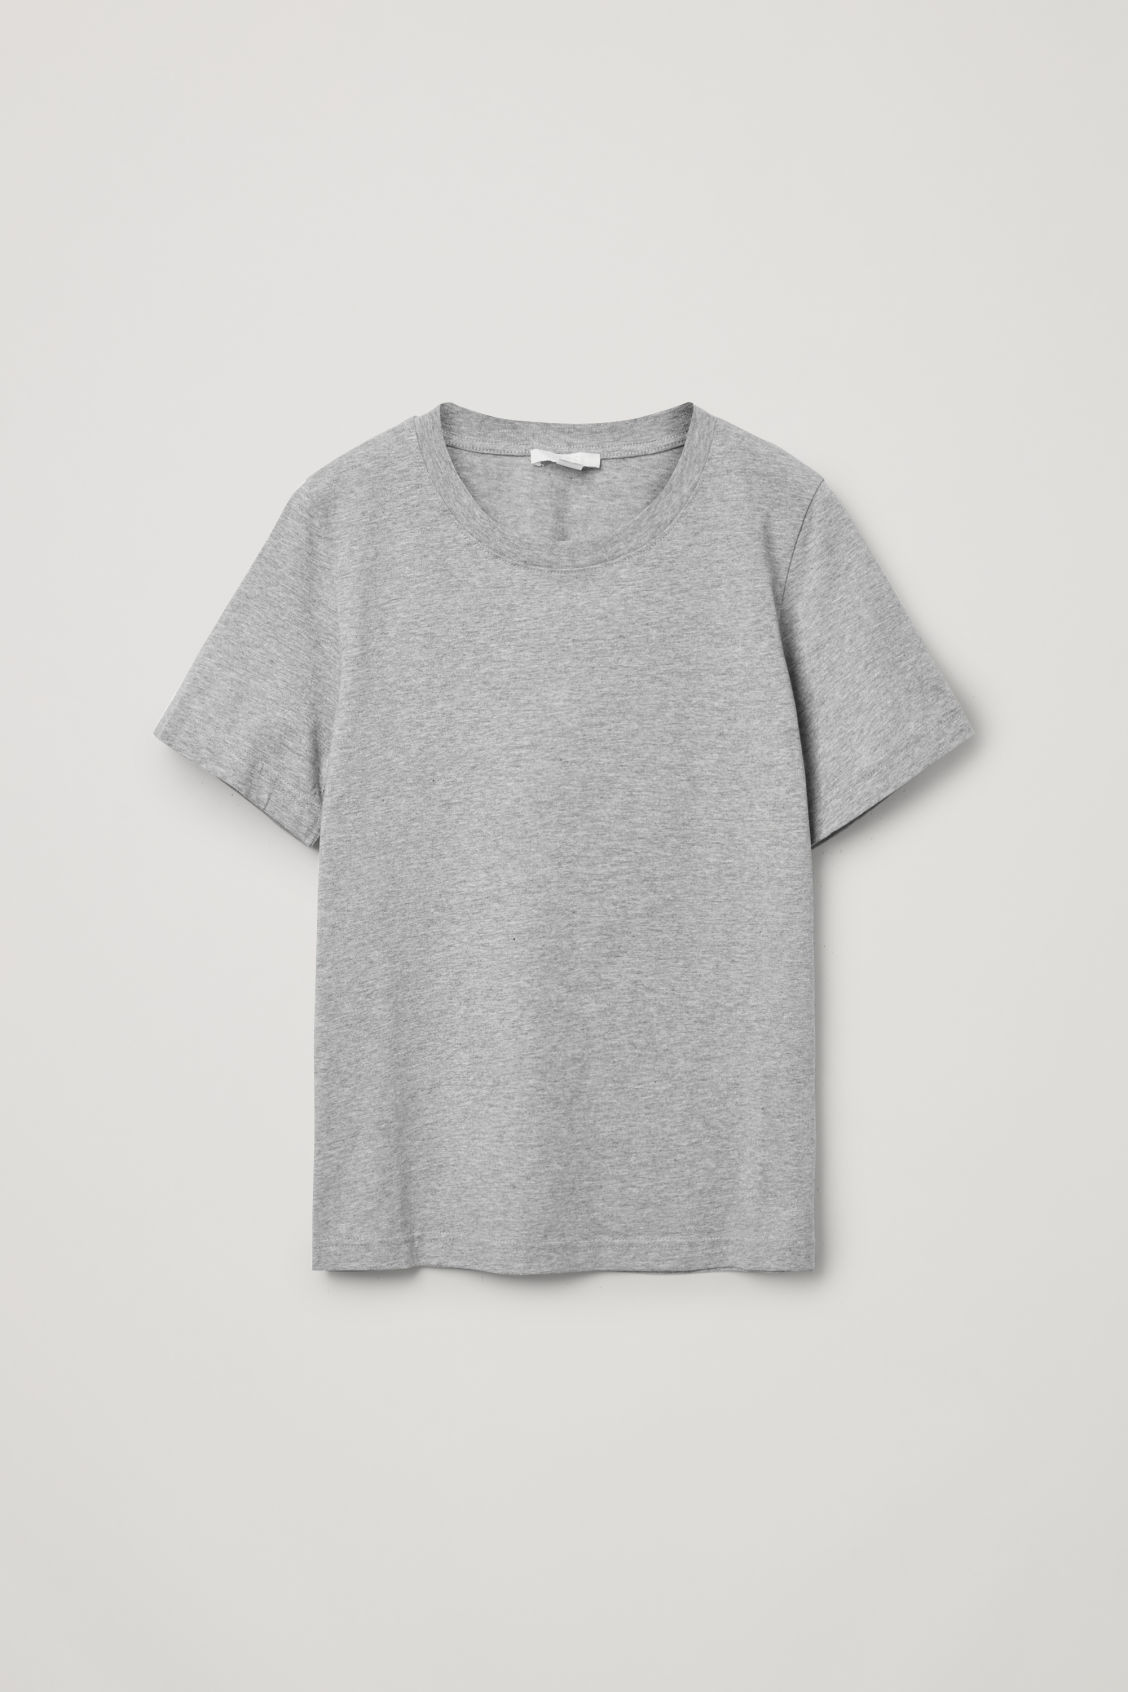 Cos Cotton Jersey T-shirt In Grey